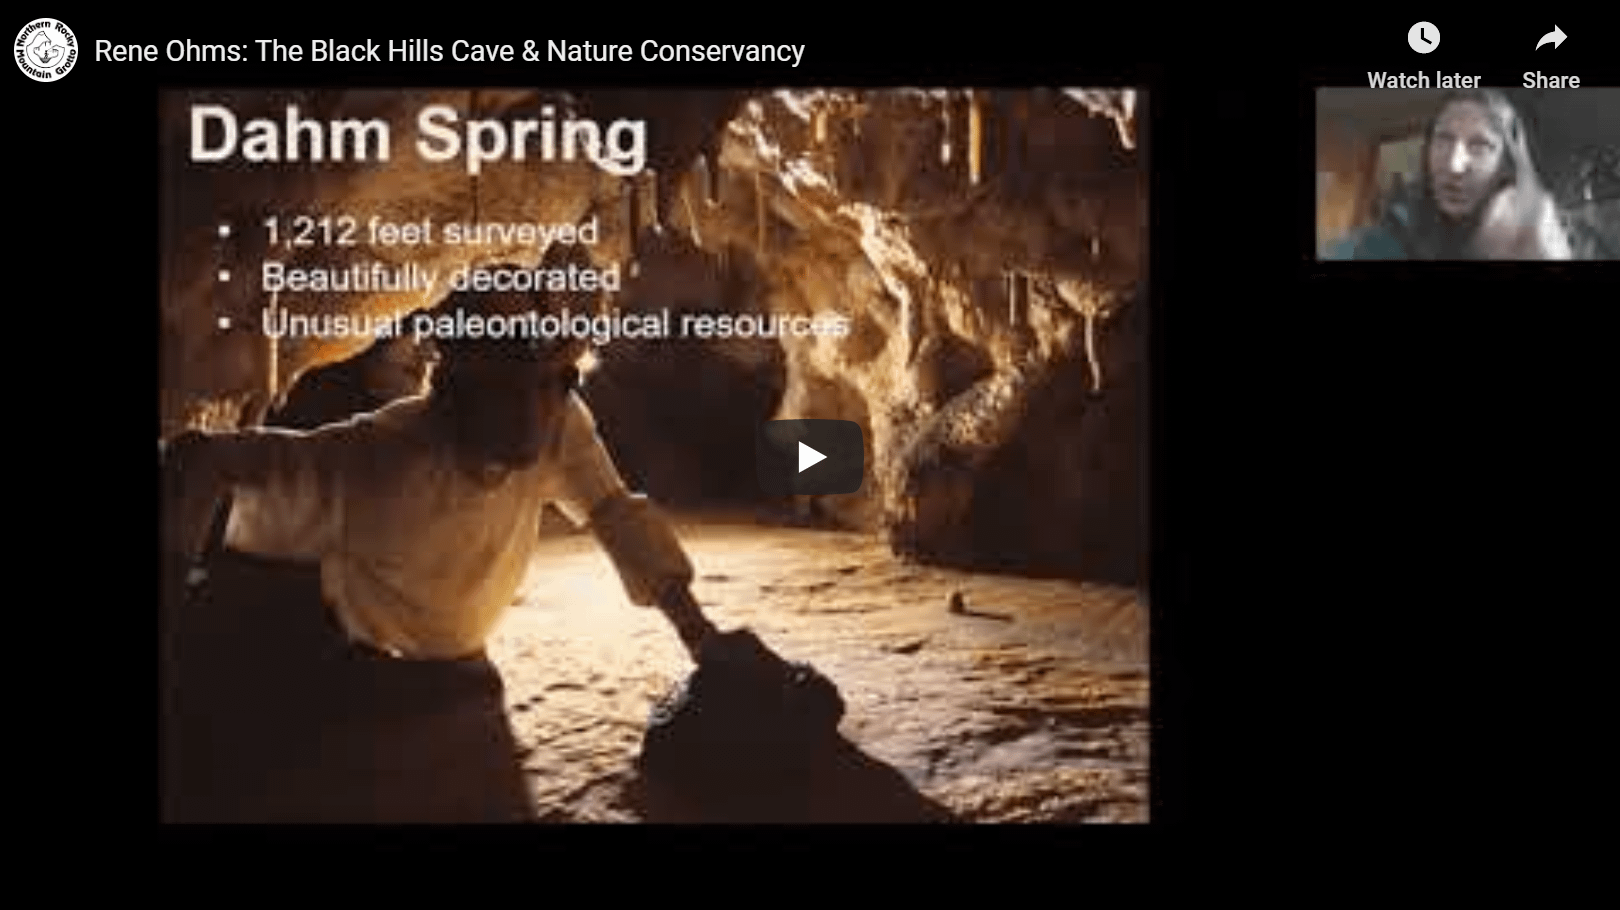 Rene Ohms: The Black Hills Cave & Nature Conservancy